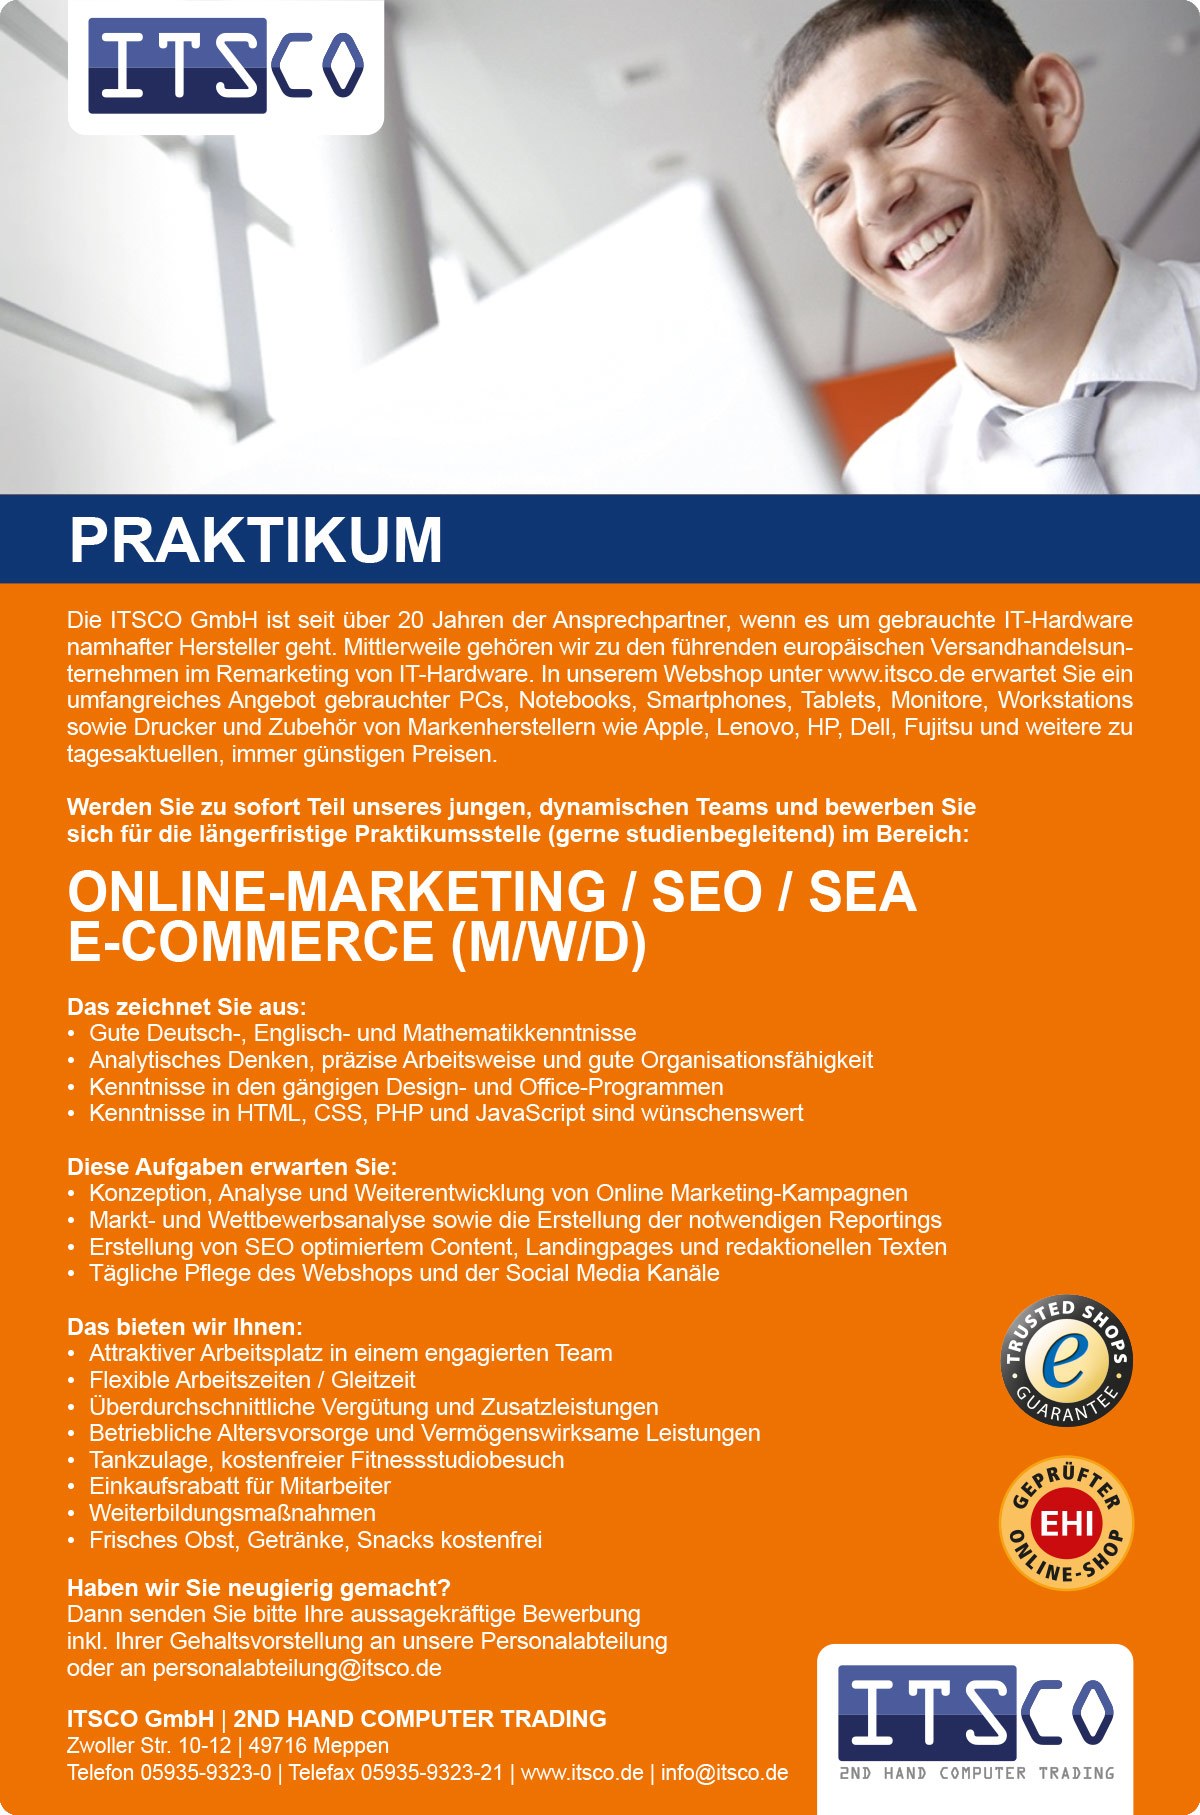 Praktikum im Bereich Online Marketing / SEO / E-Commerce